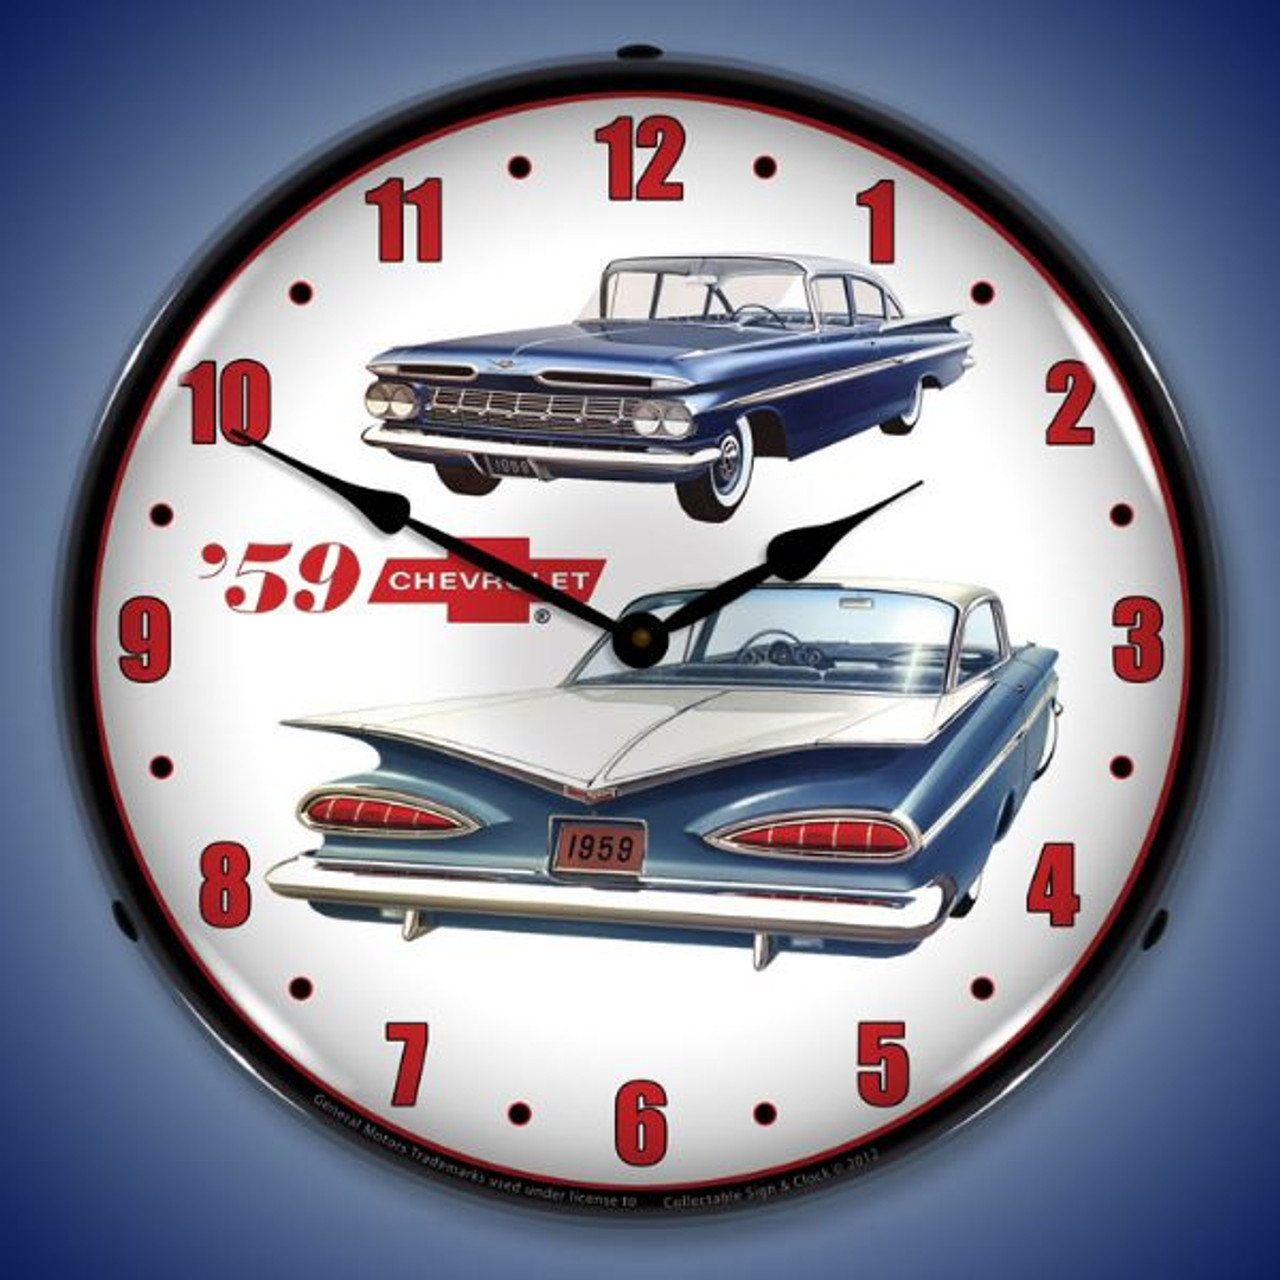 Retro 1959 Chevrolet  Lighted Wall Clock 14 x 14 Inches